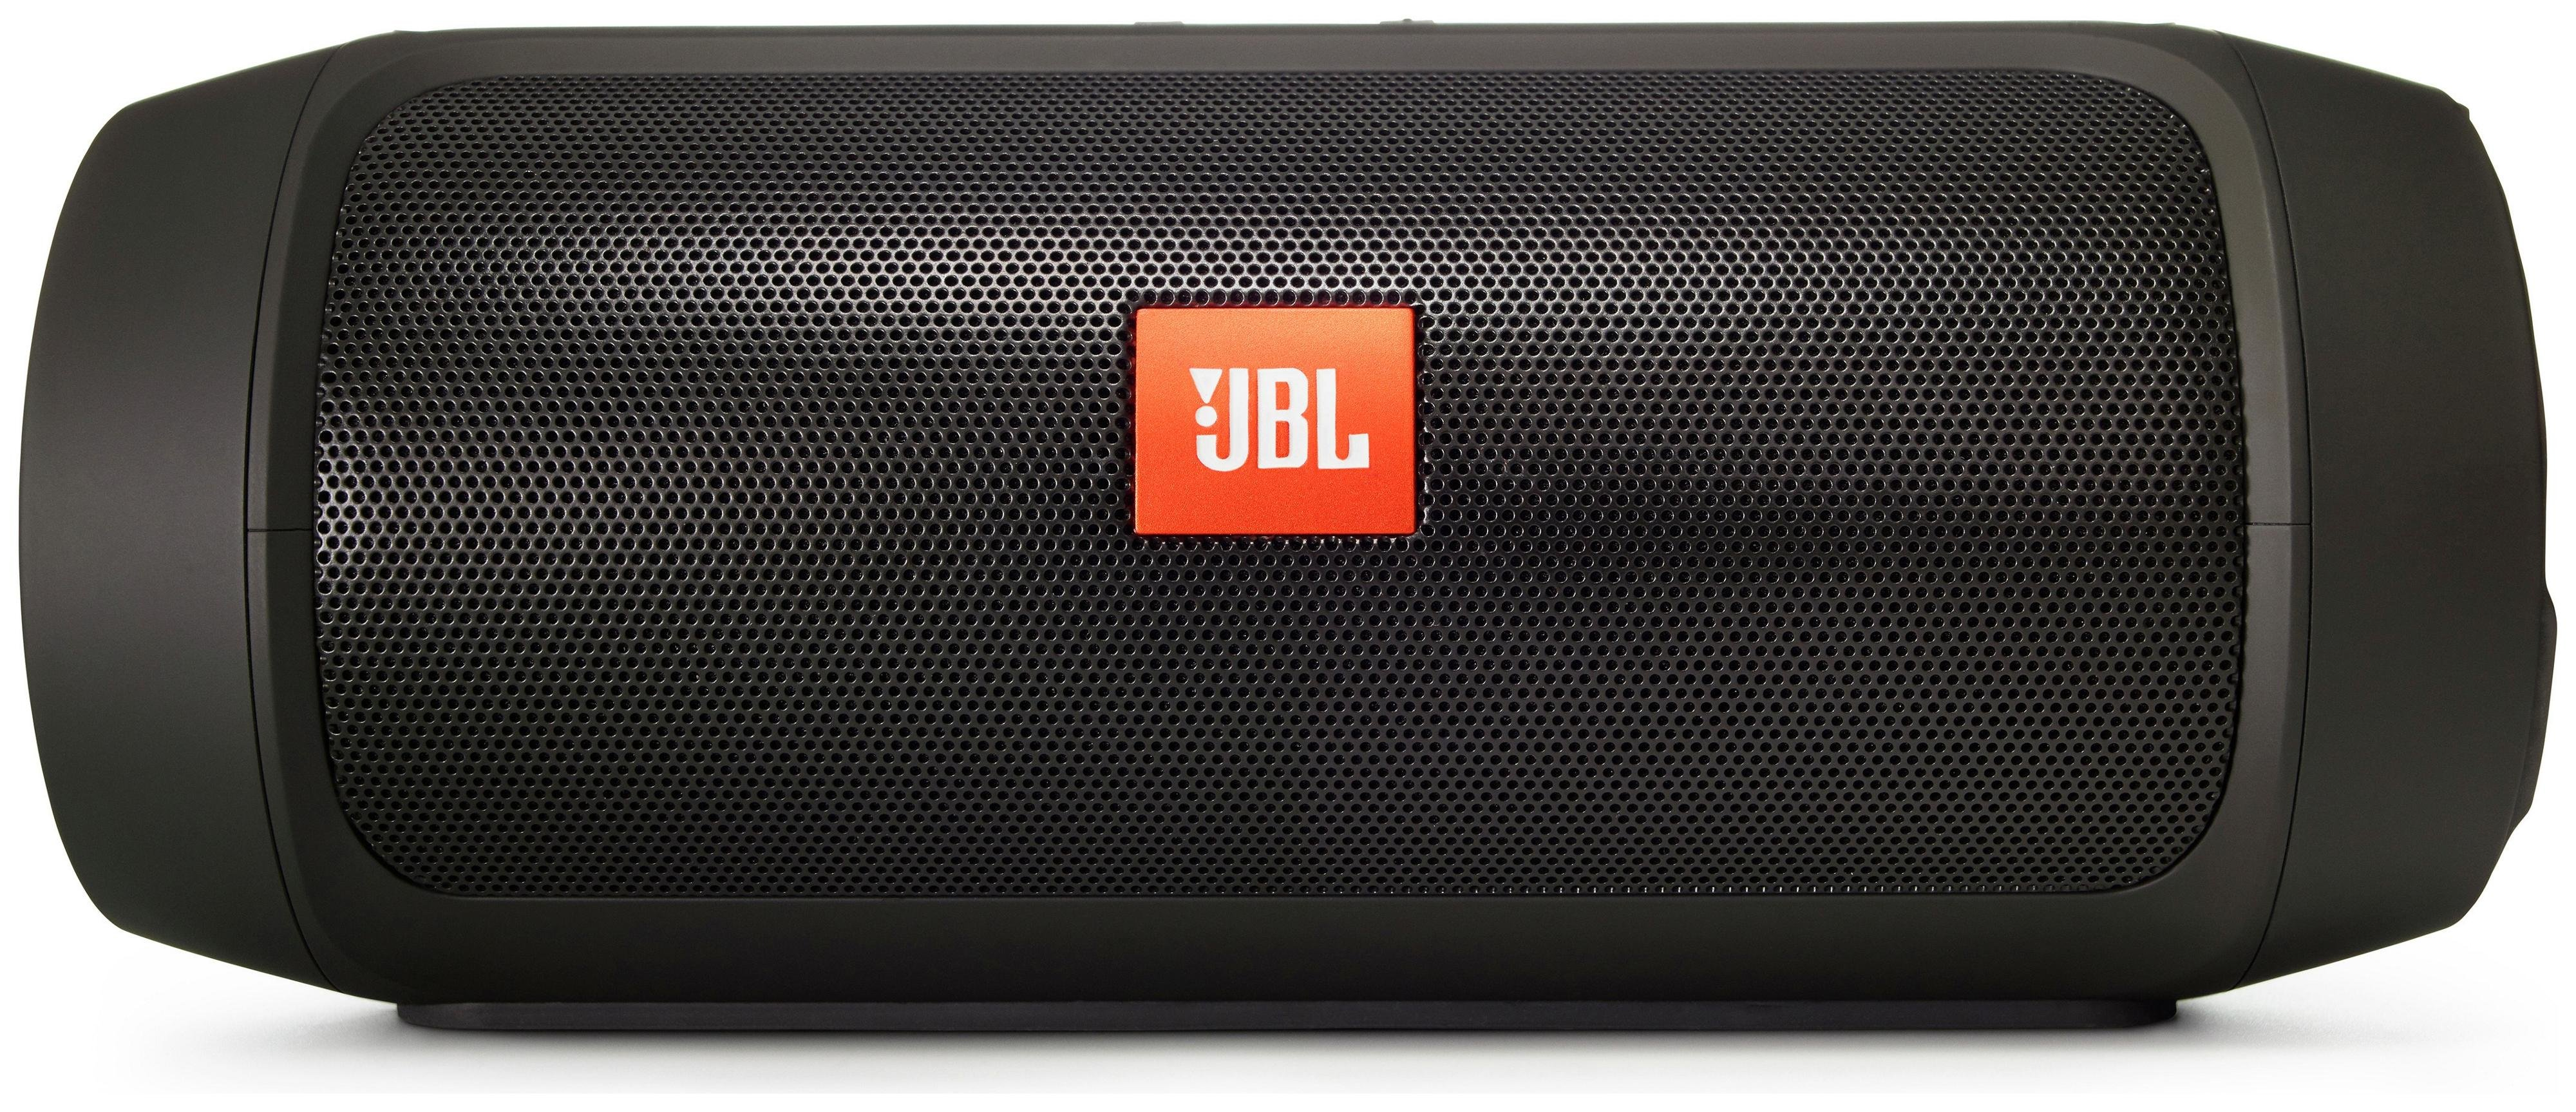 jbl go portable bluetooth speaker pink. Black Bedroom Furniture Sets. Home Design Ideas